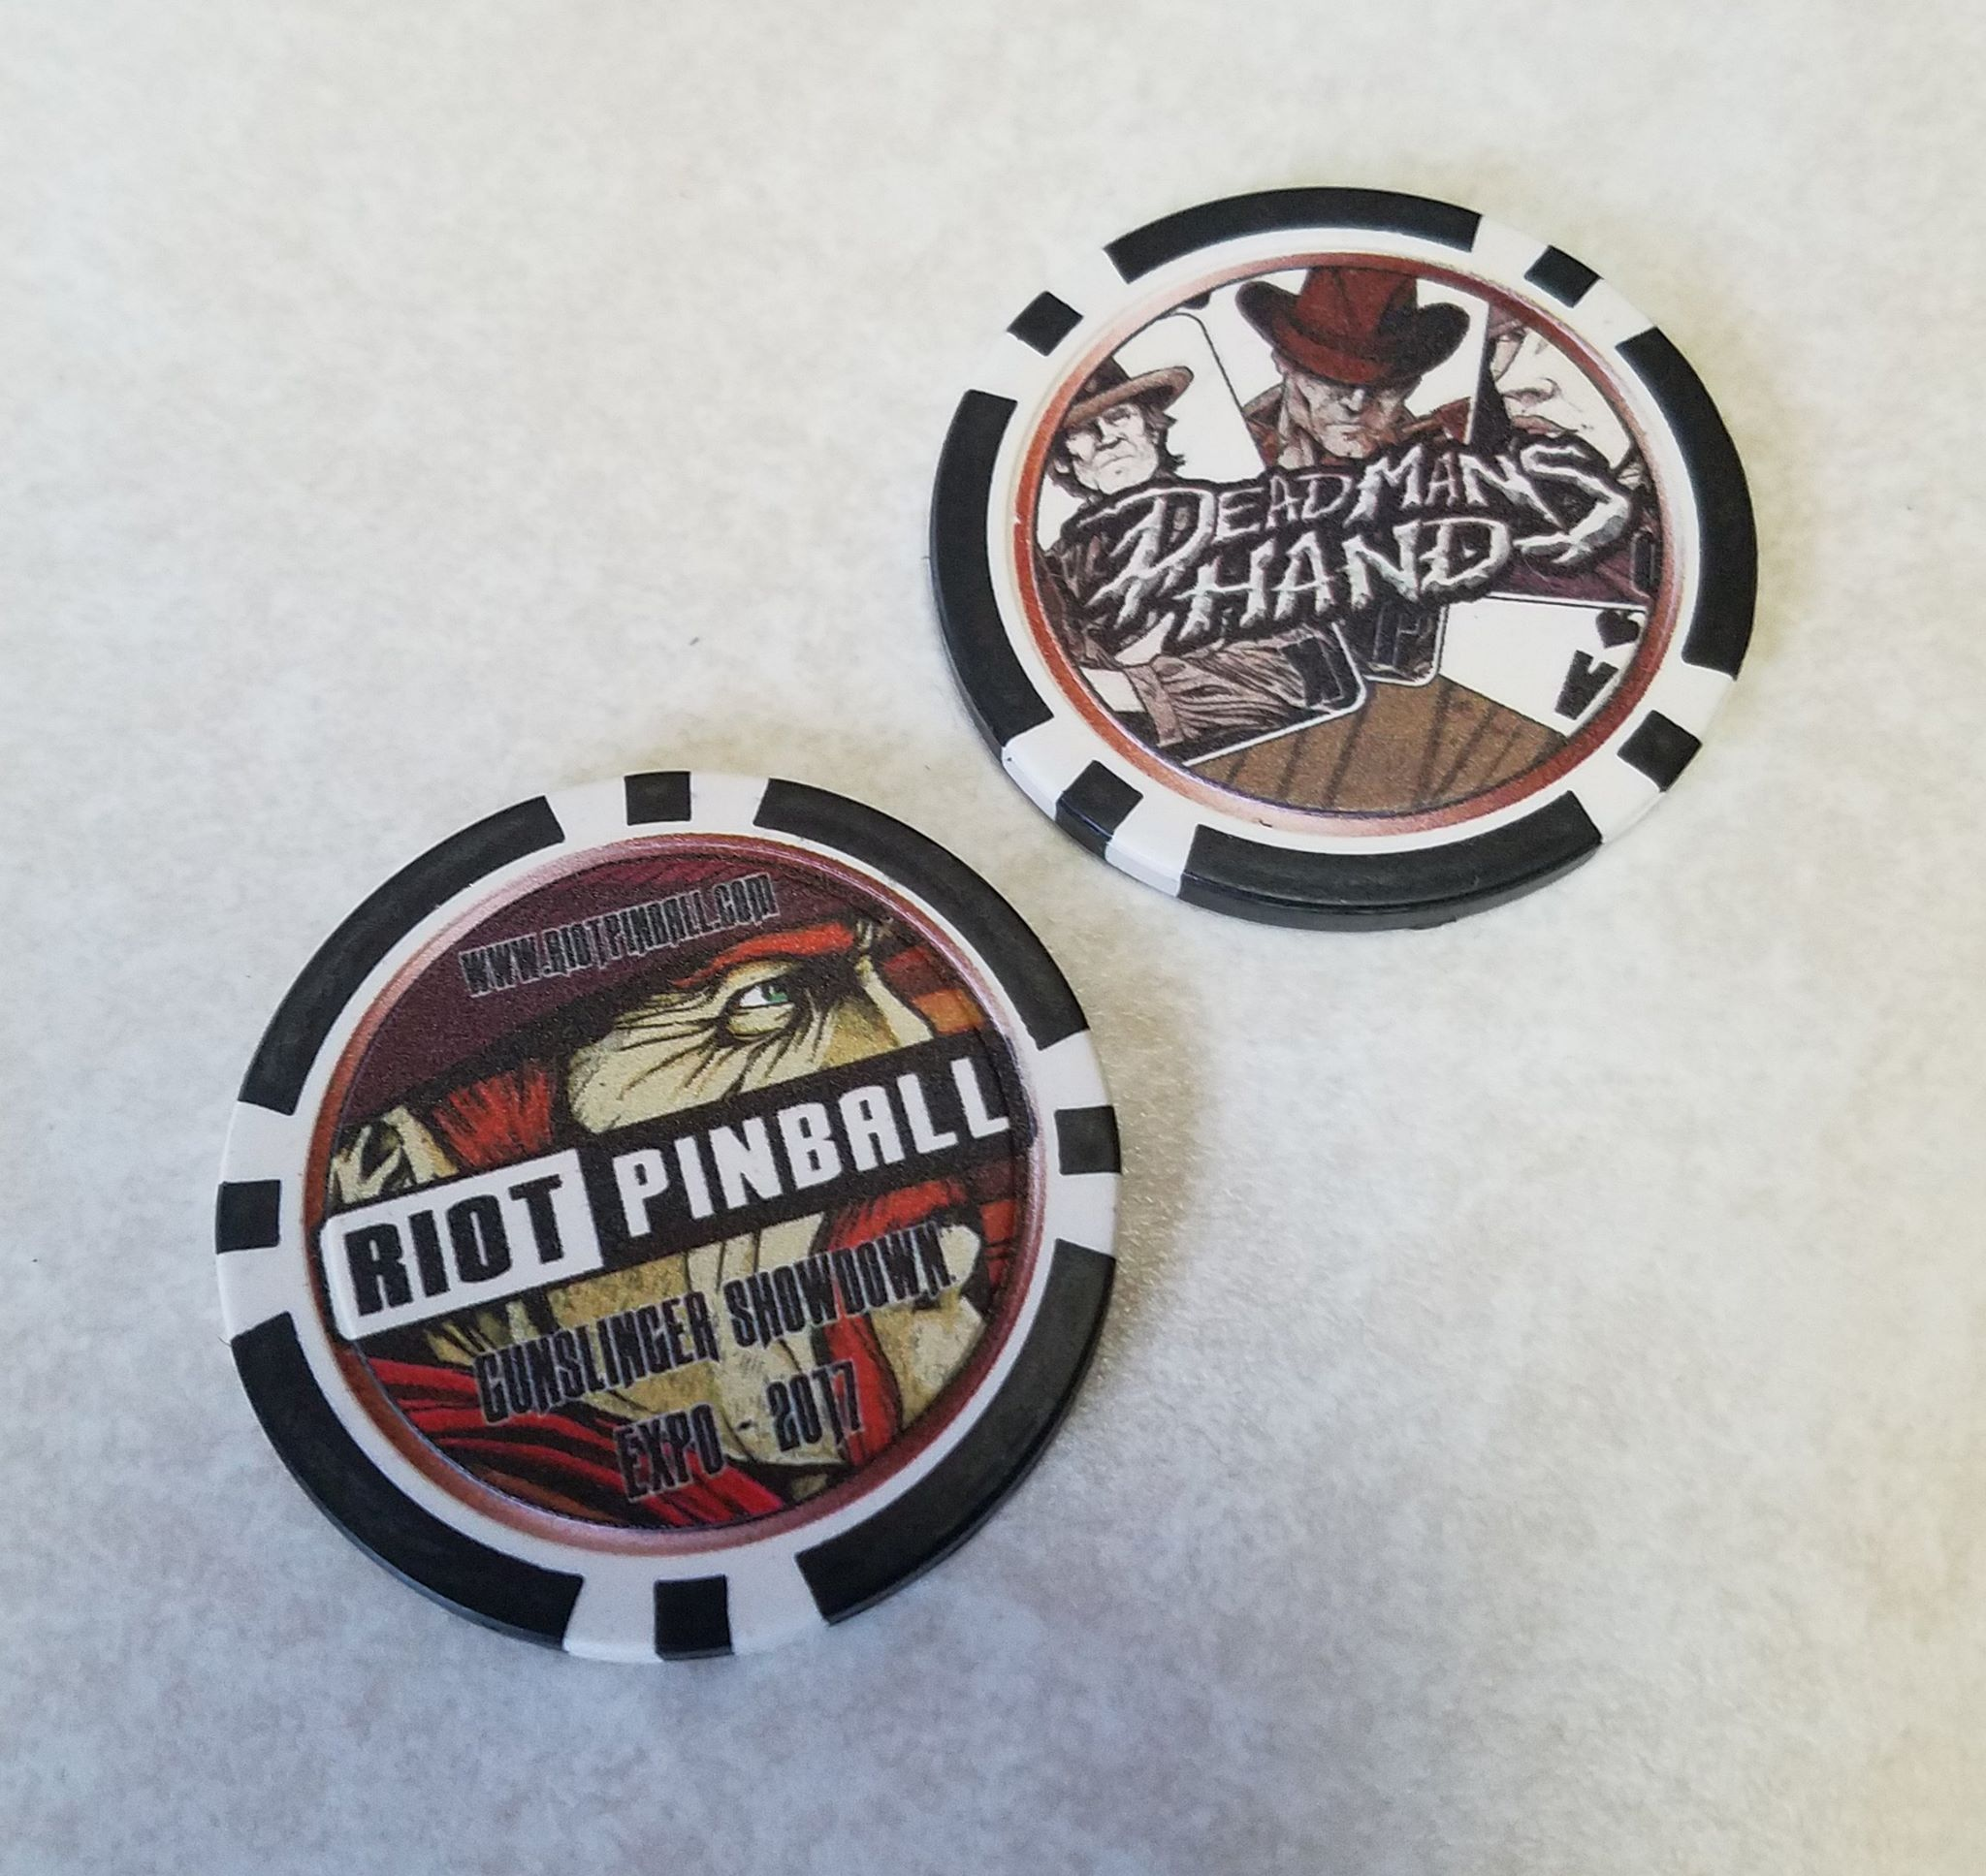 fdcf05150b185 ... what appear to be casino chips (or coasters) with the same images on  them (click images to enlarge). Could this hint a western casino-themed  game